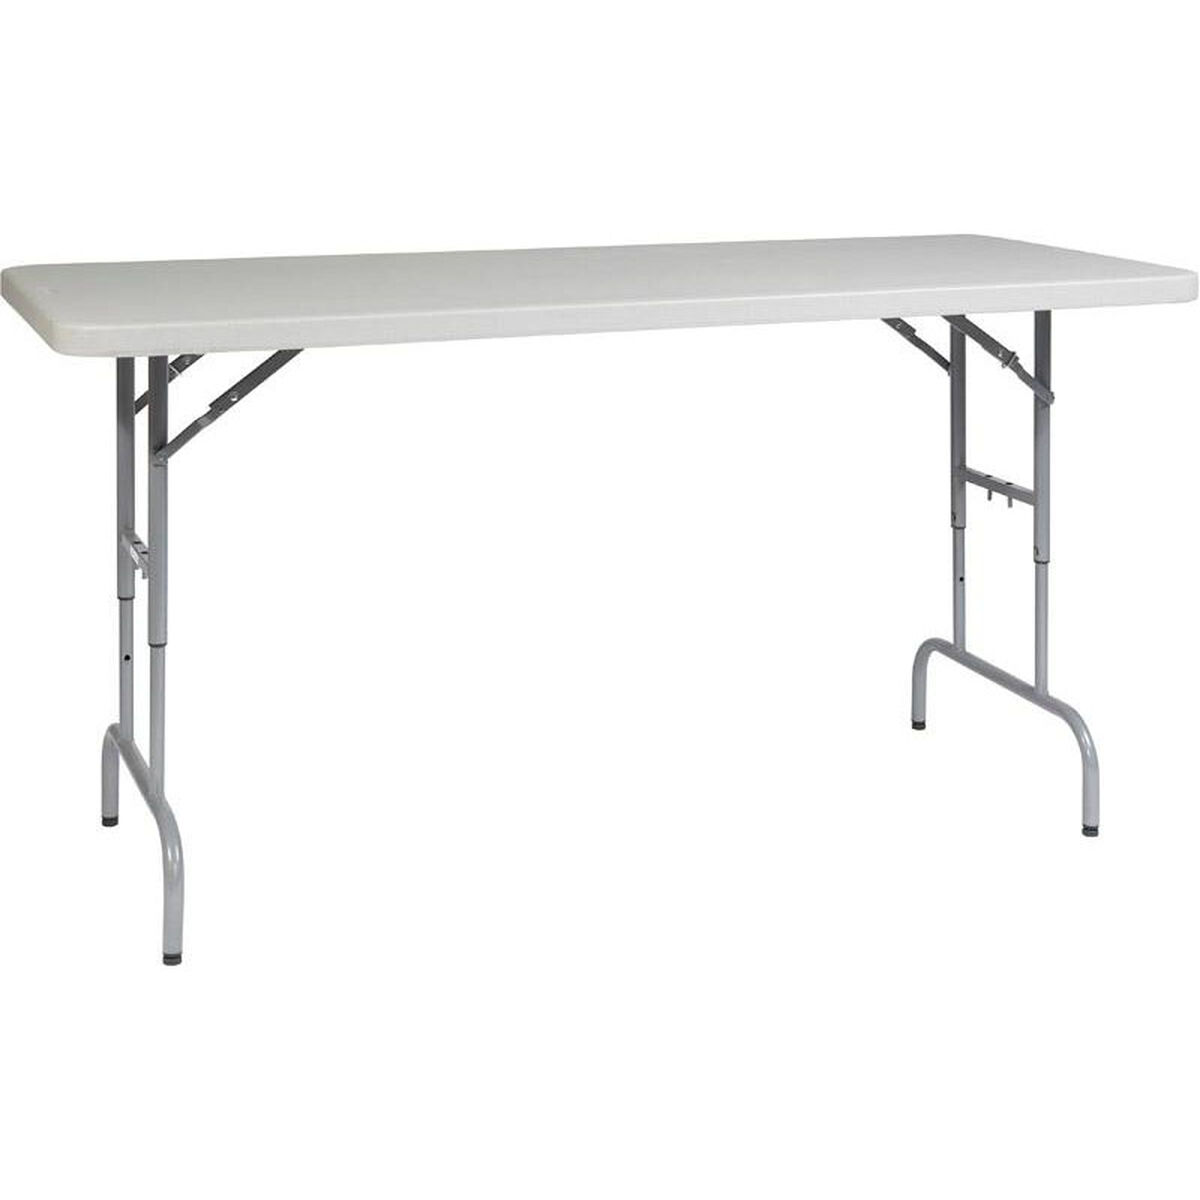 6969f6877a1 ... Our Work Smart 6  Light Weight Resin Multi Purpose Folding Table with  Height Adjustment is ...